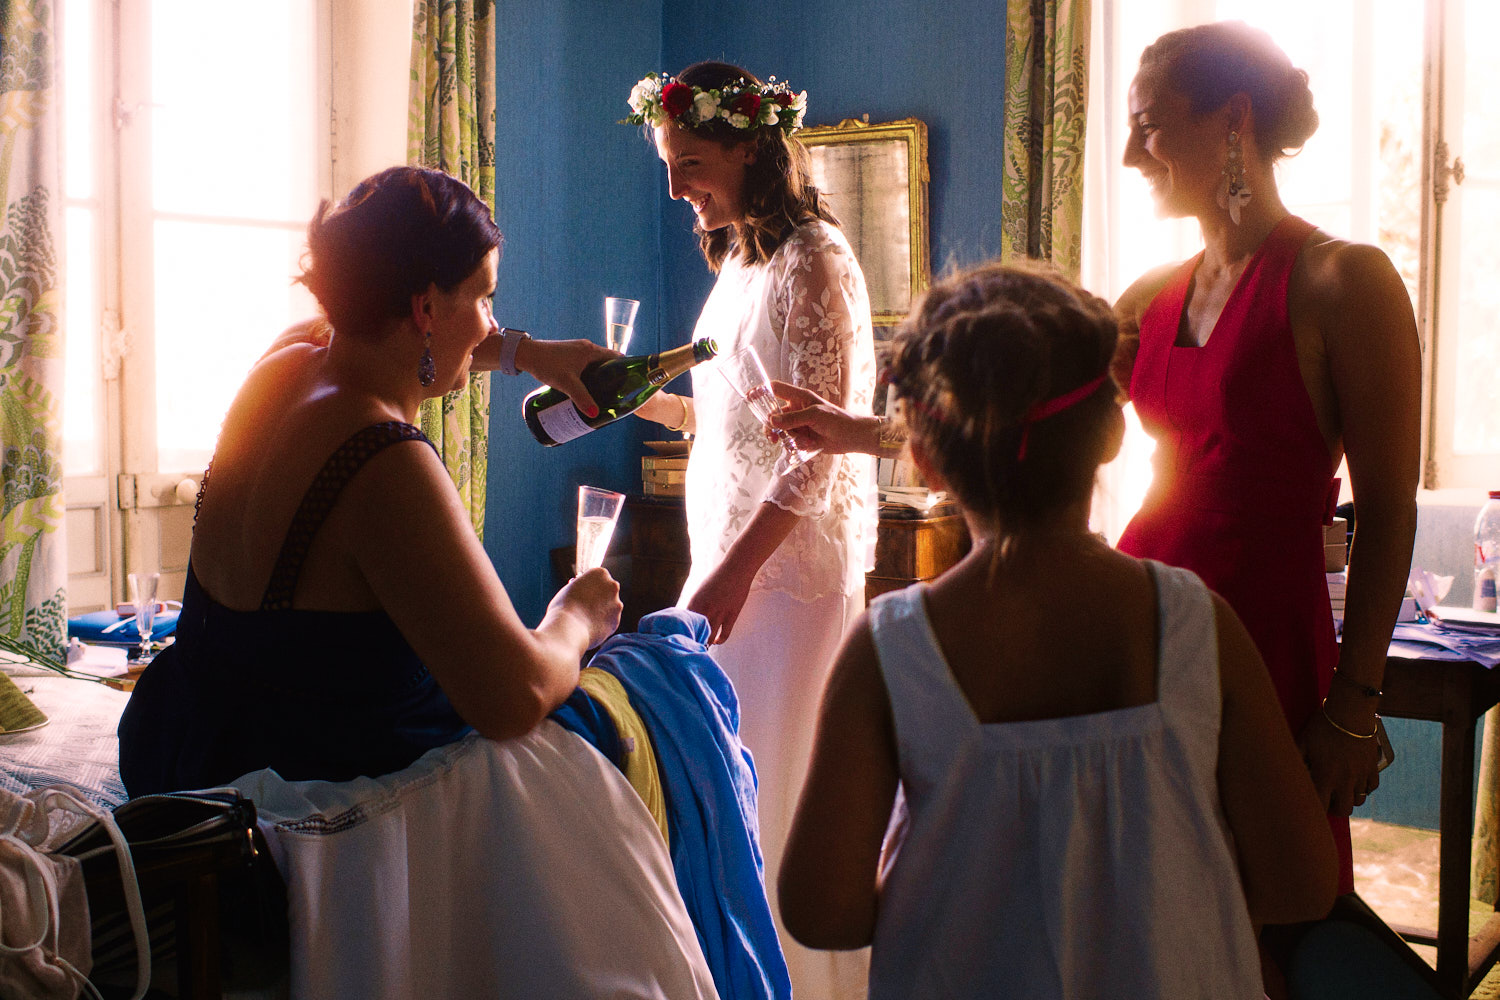 Bride in floral head piece shares champagne with her bridal party